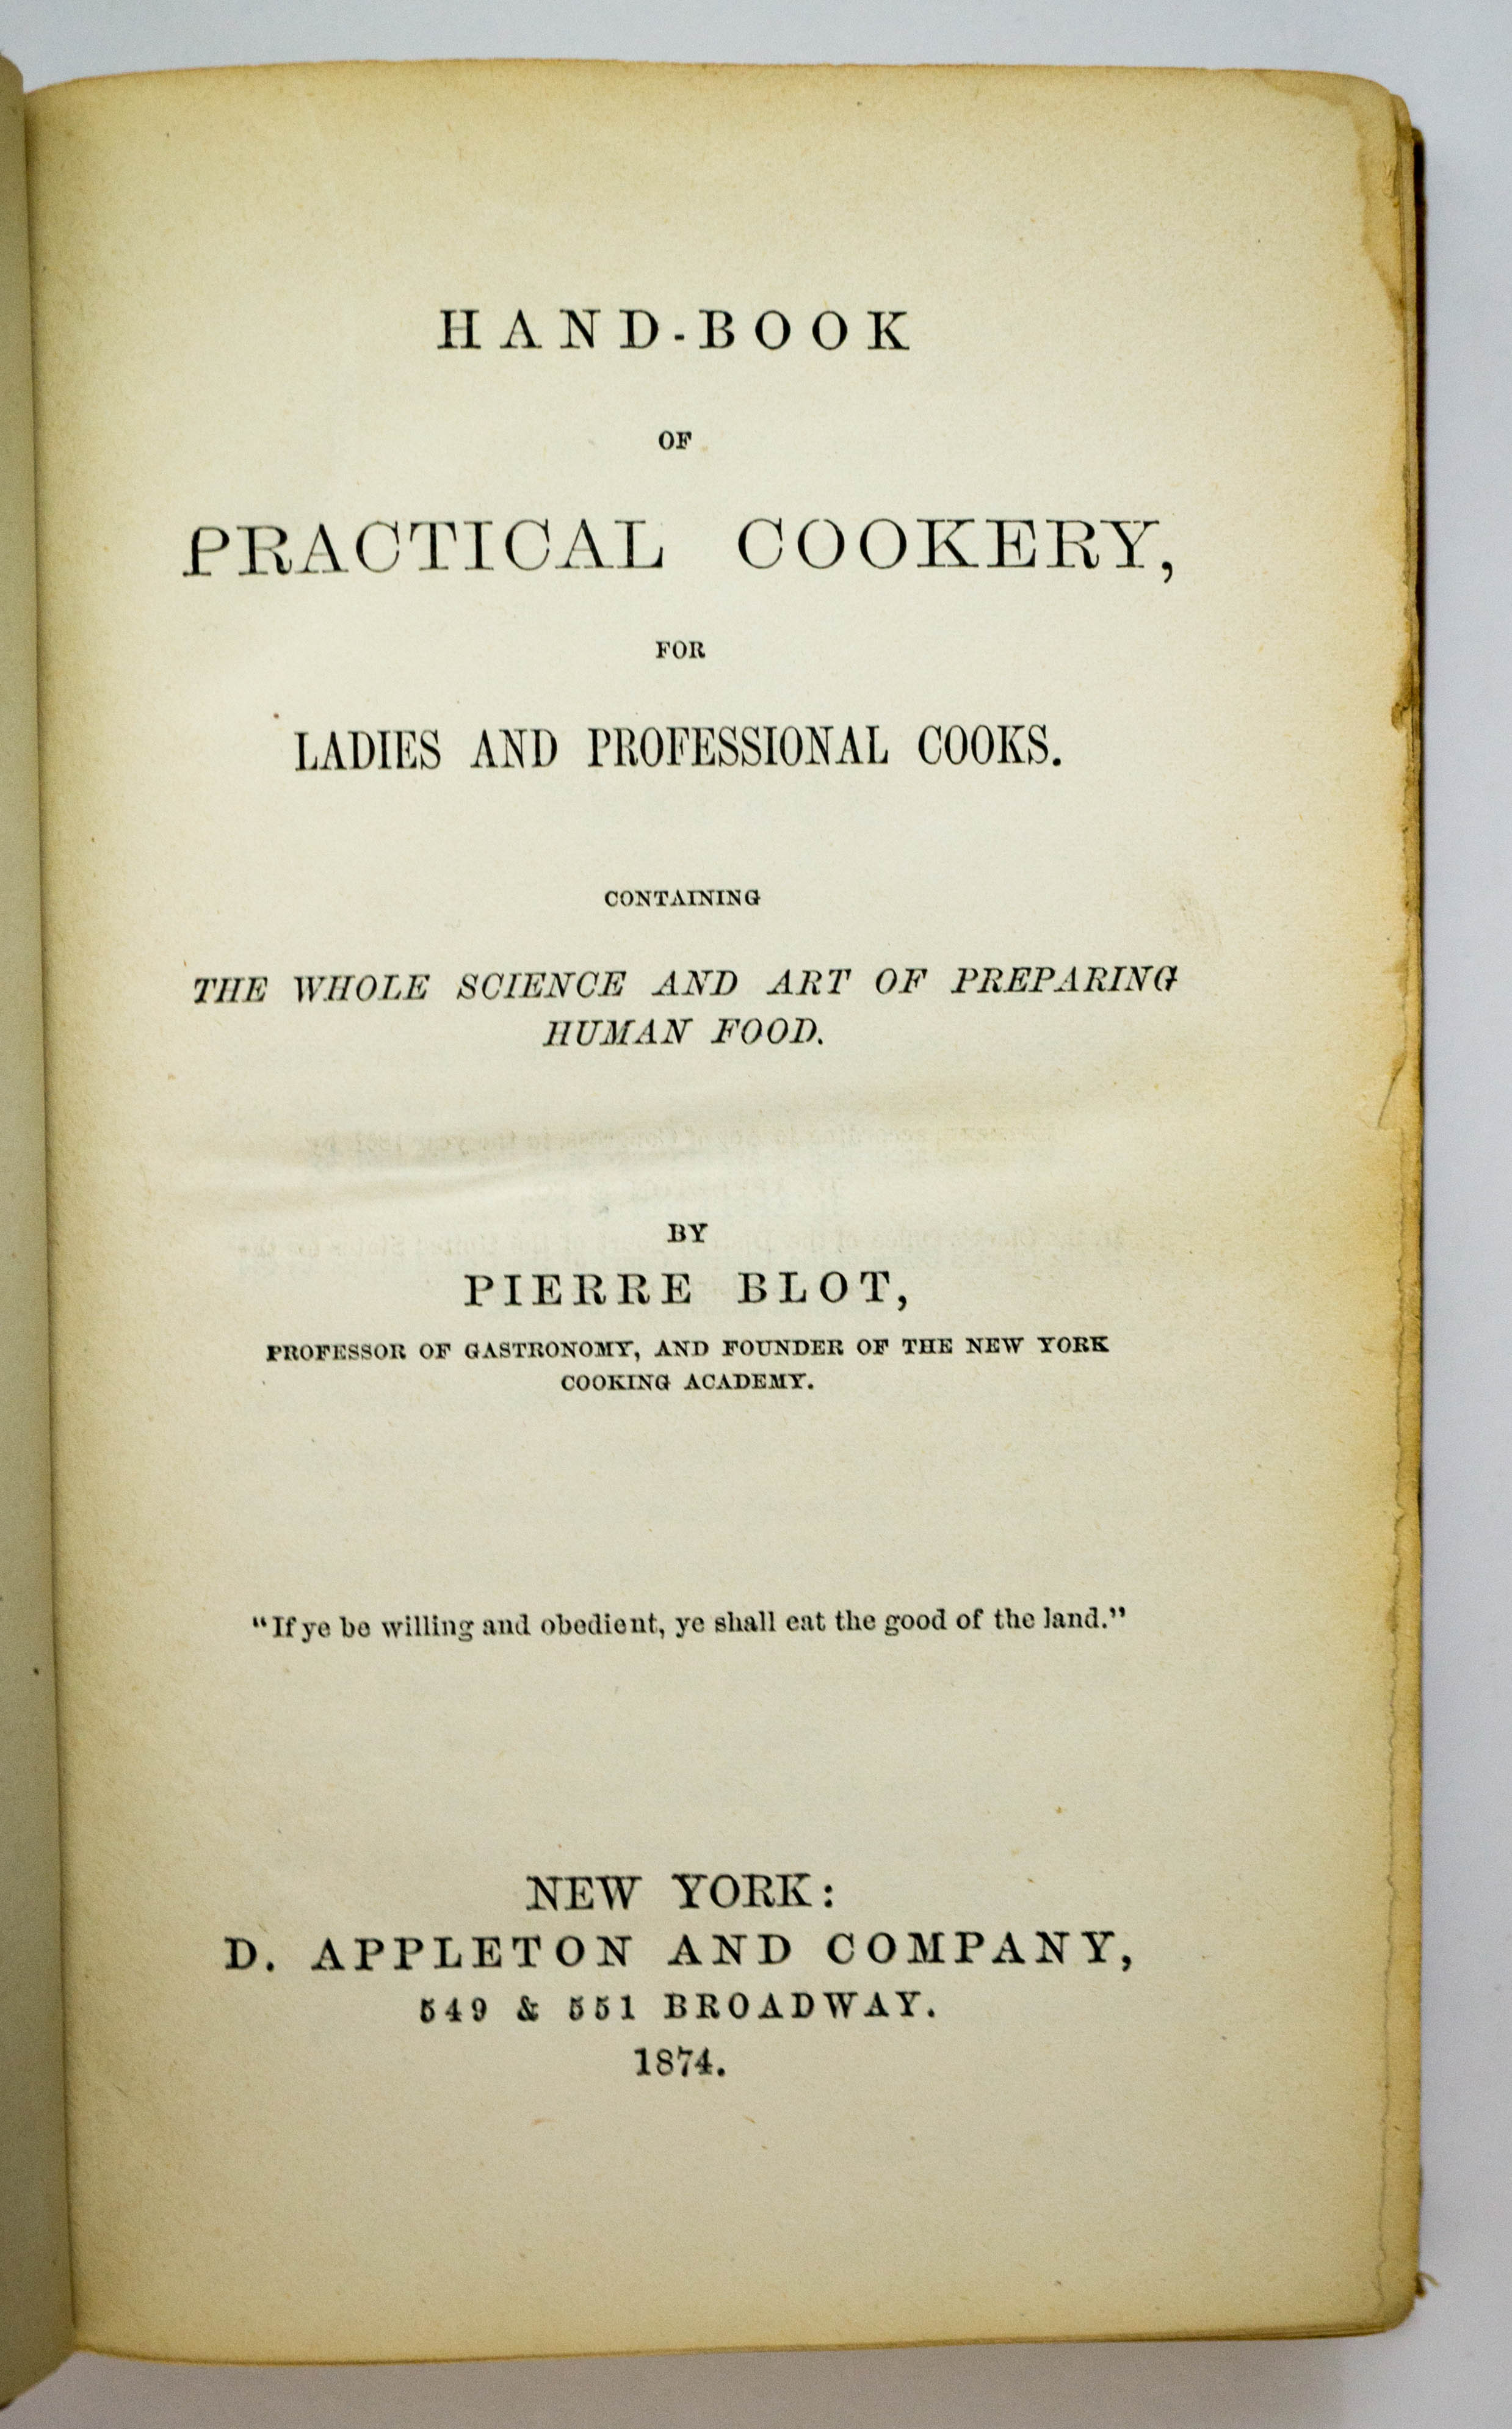 Hand-Book of Practical Cookery by Pierre Blot 1874